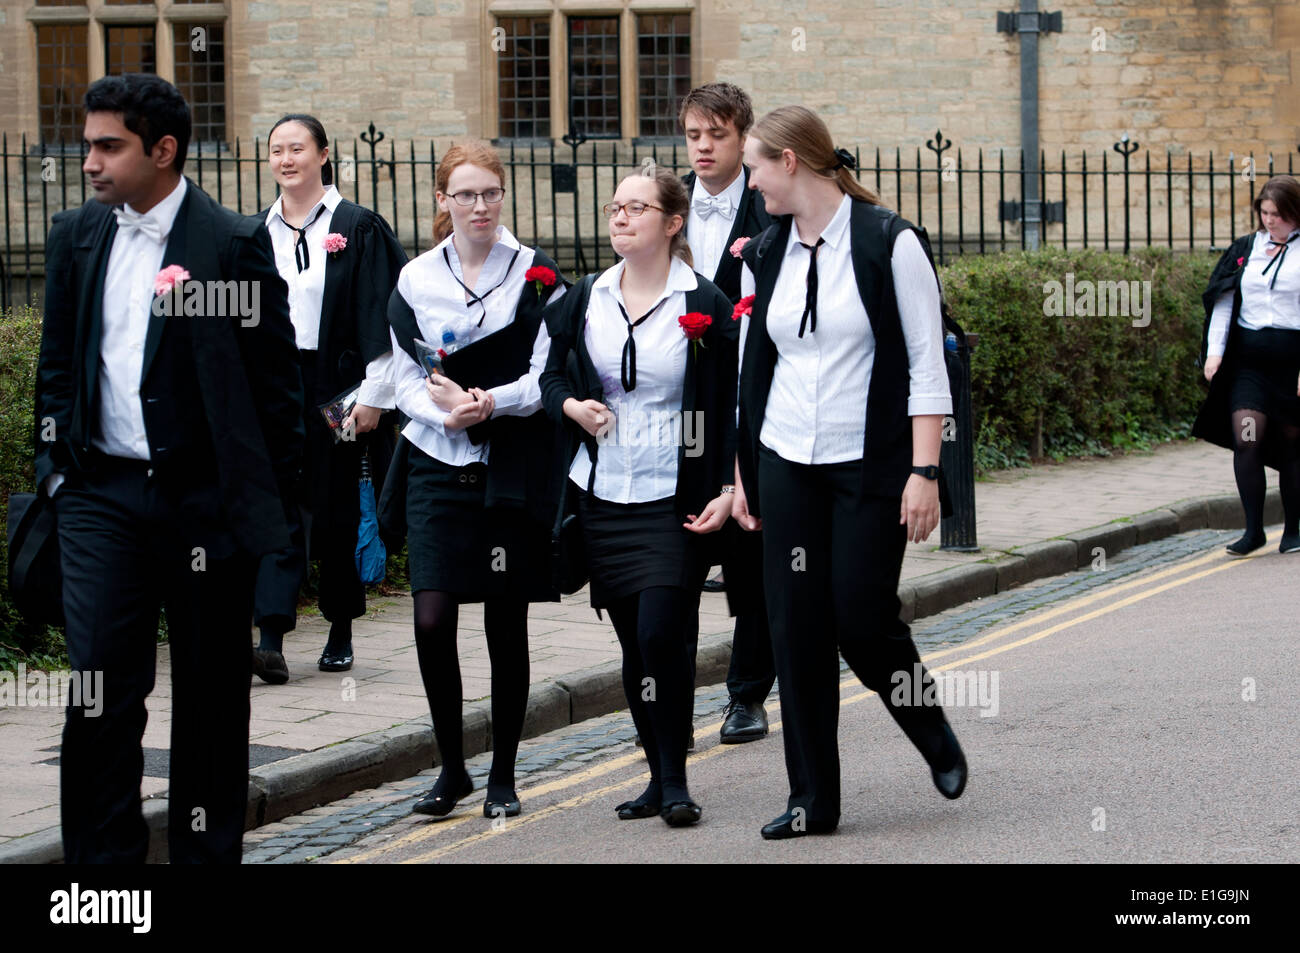 Students arriving at the Examination Rooms building to take exams, Oxford, UK - Stock Image